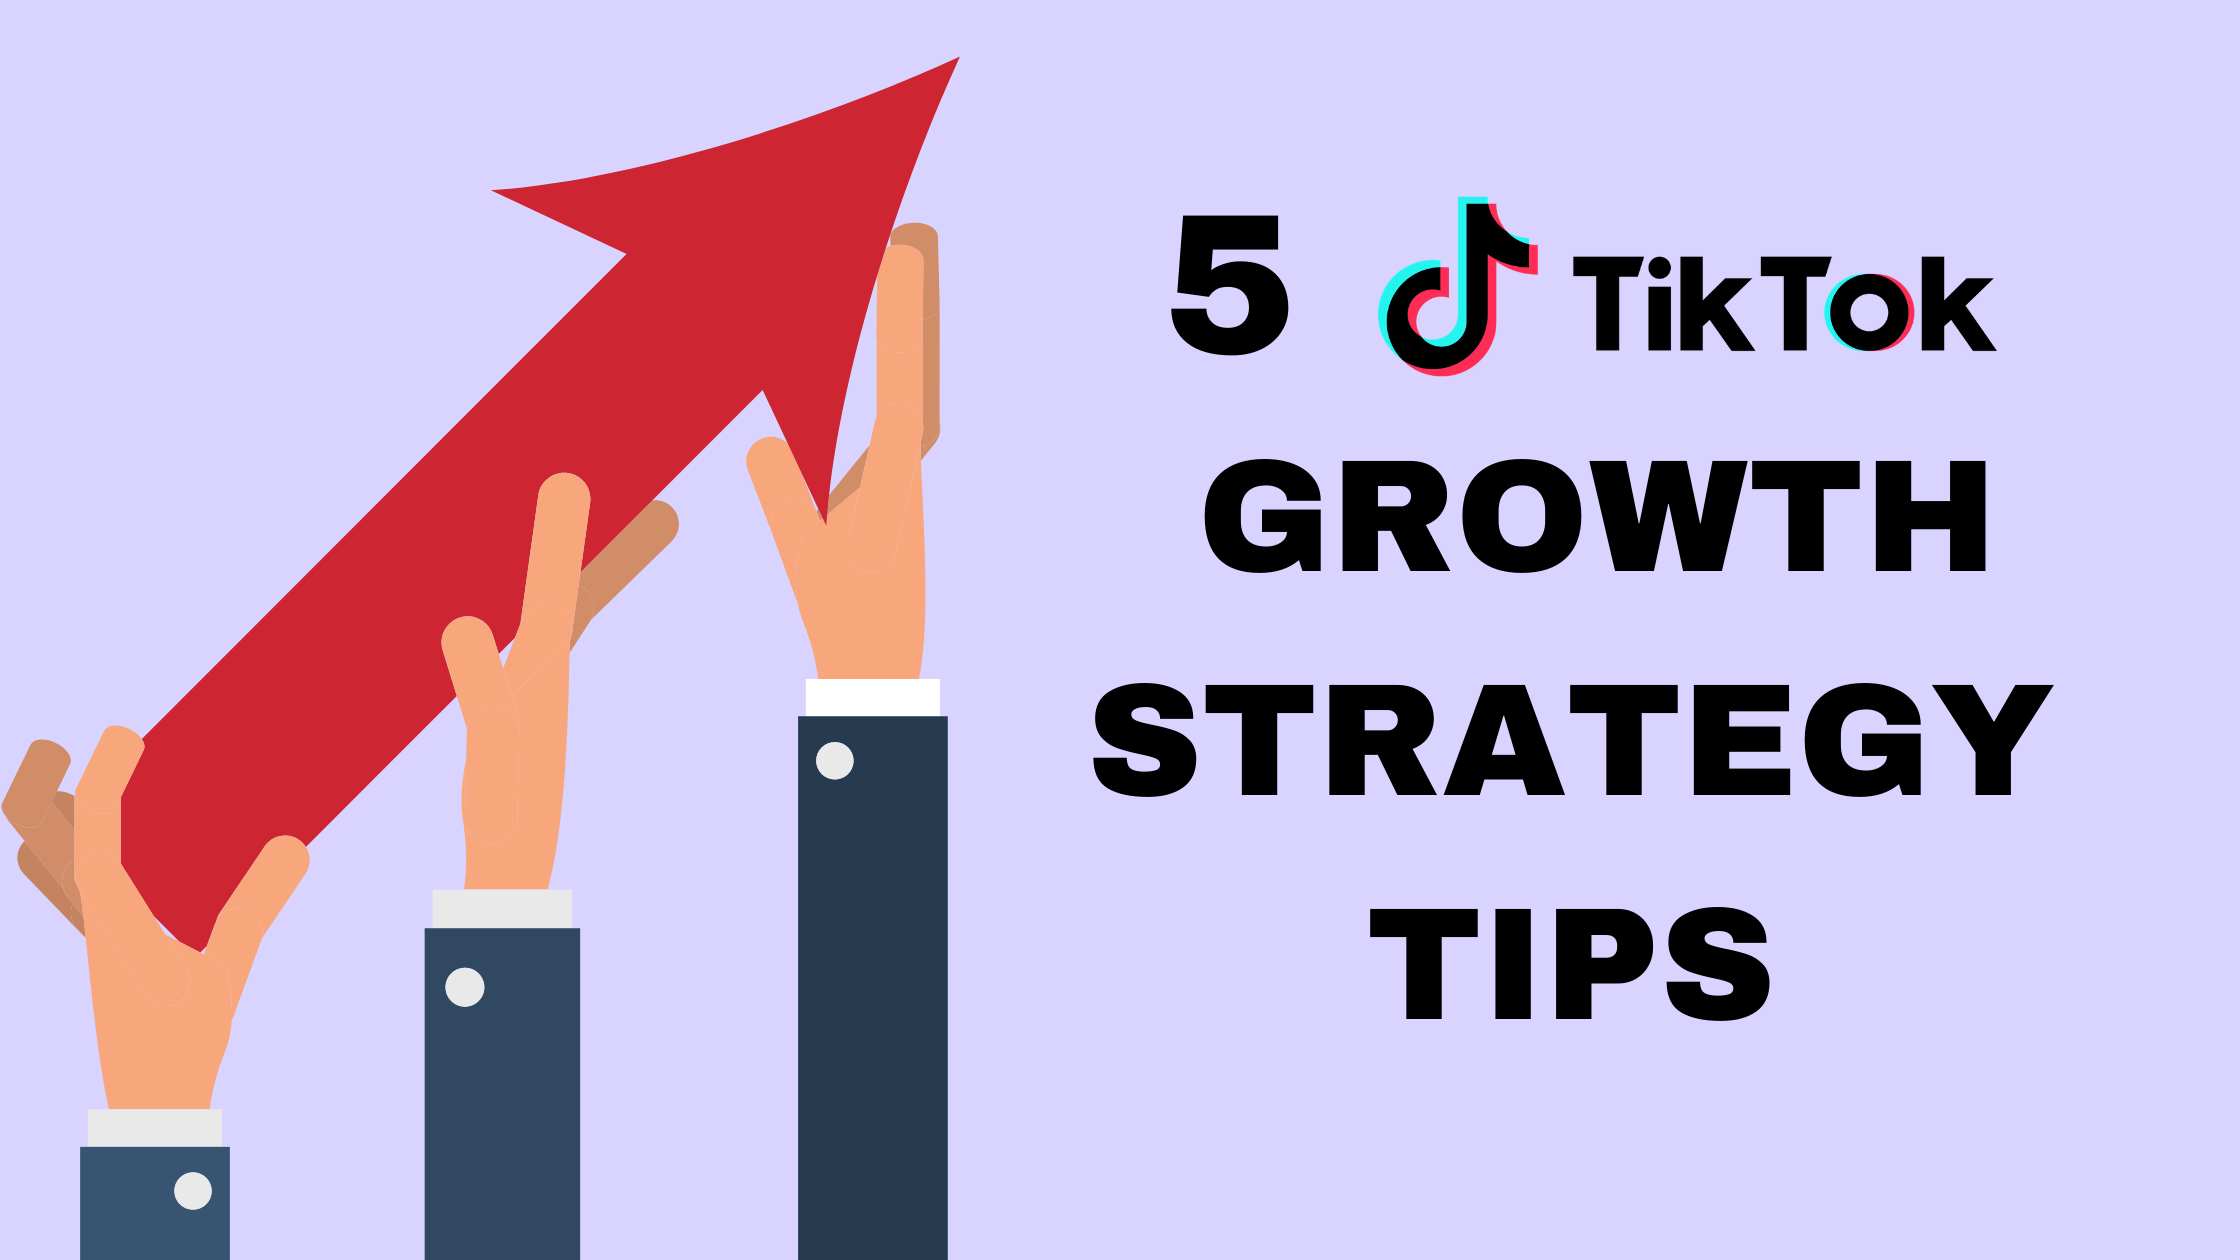 TikTok Growth Strategy Tips: 5 Ultimate Tips for Beginners